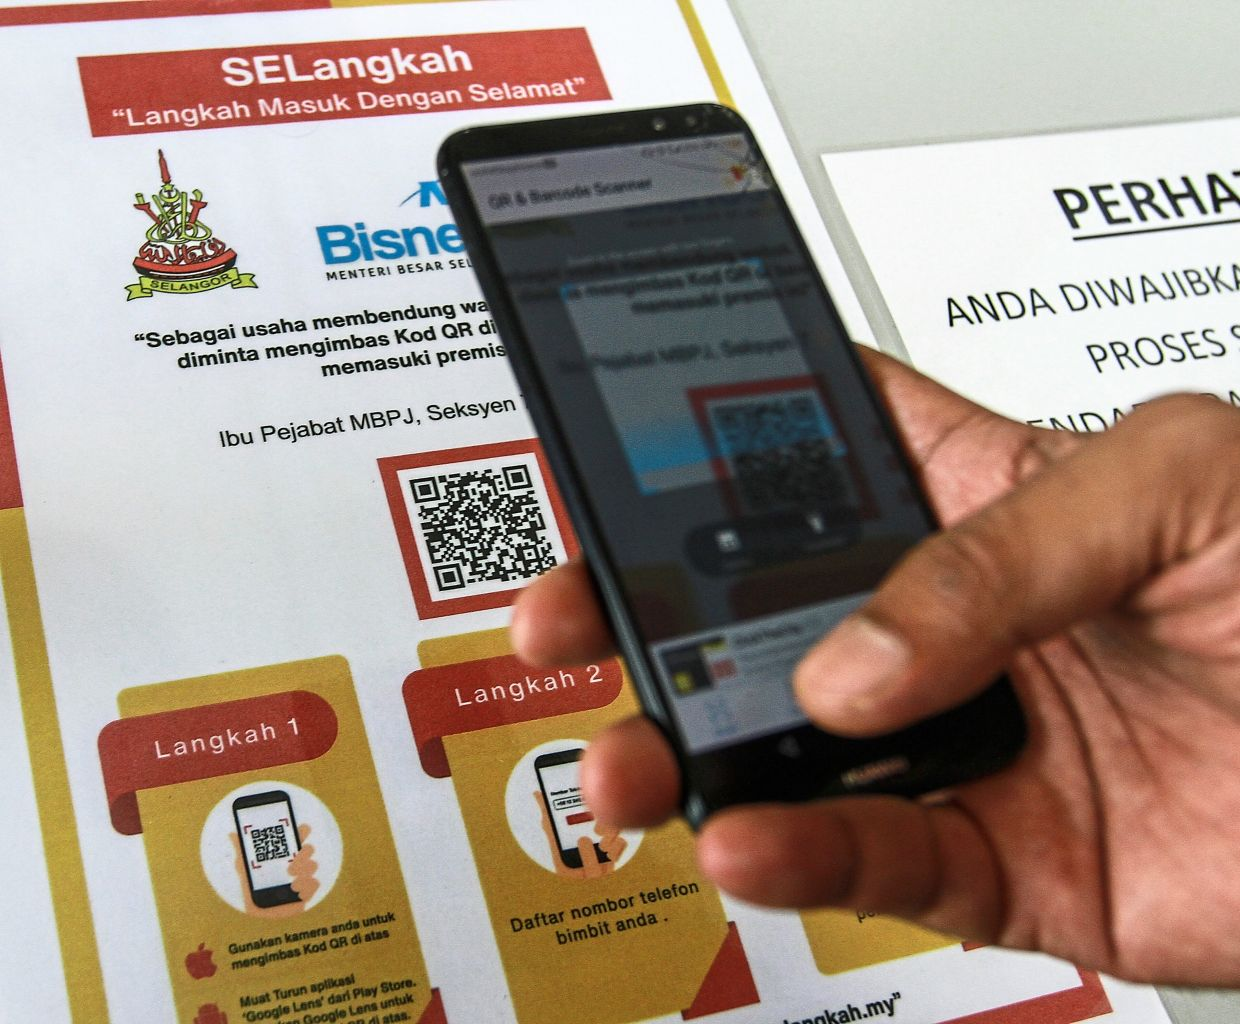 SElangkah allows users to report the number of people not wearing masks when checking in. — JADE CHAN/The Star